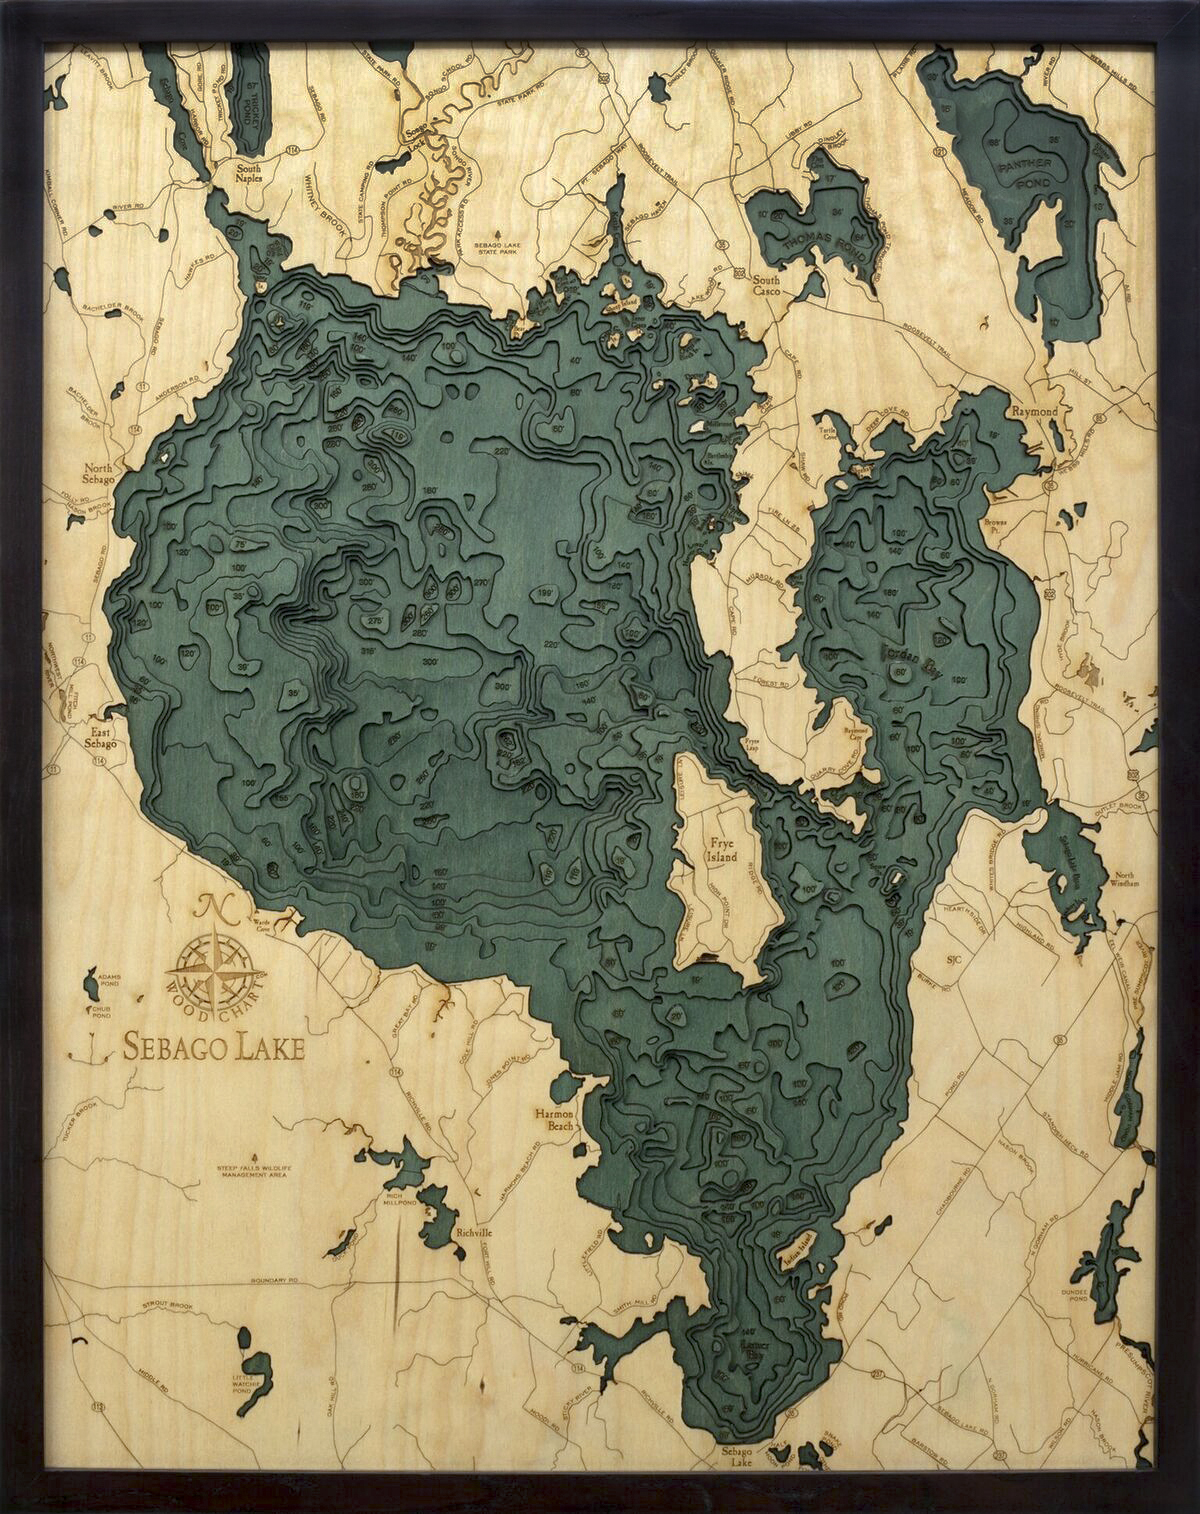 Bathymetric Map Sebago Lake, Maine